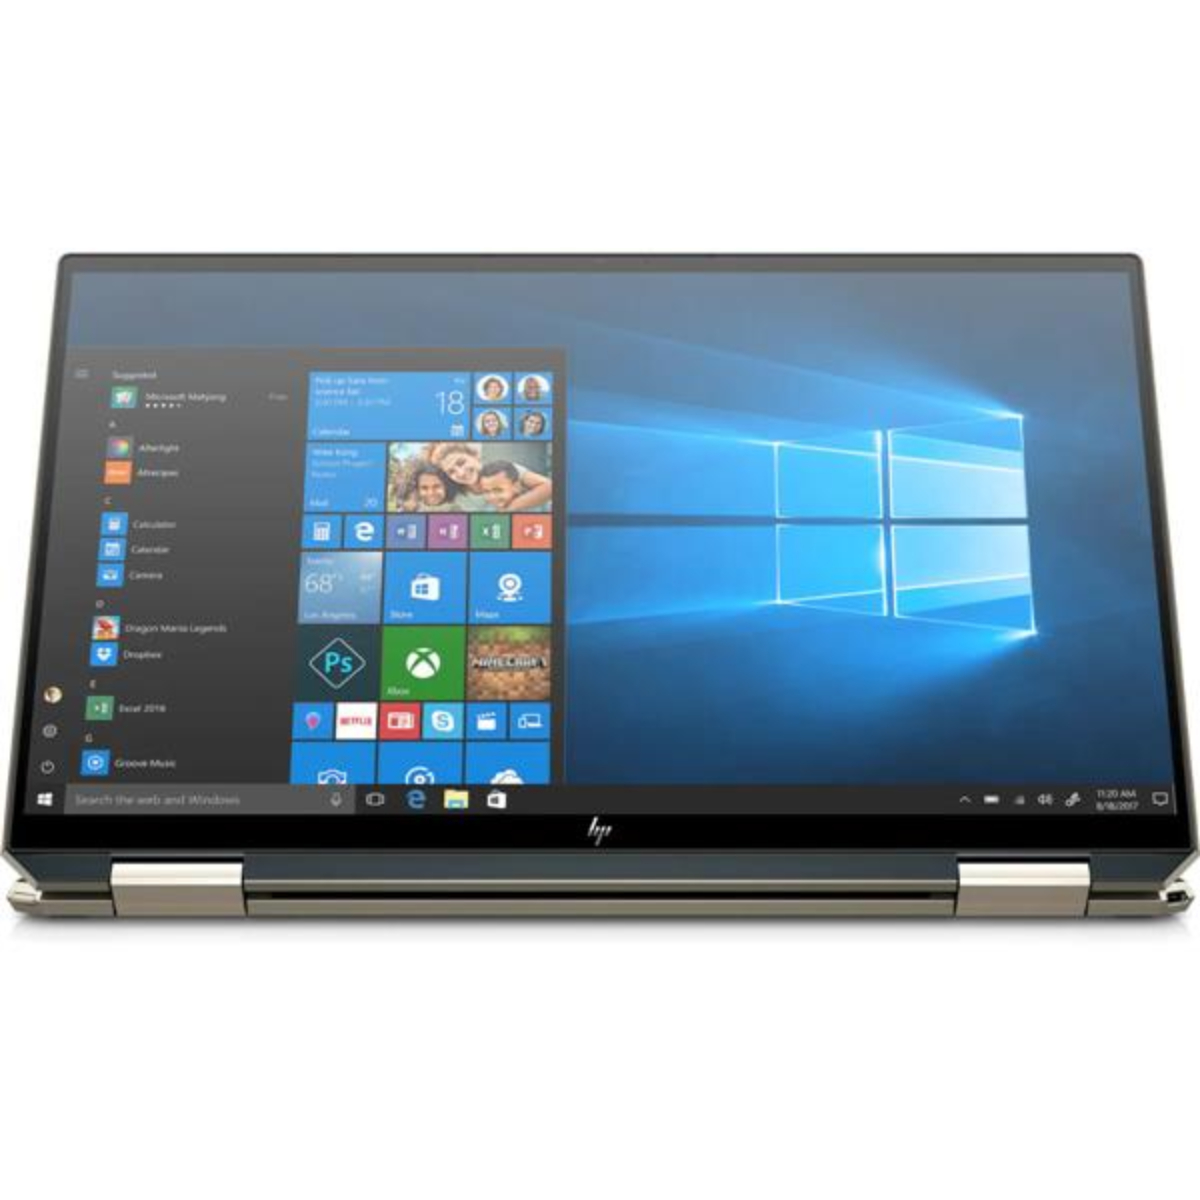 מחשב נייד HP x360 Touch 13-aw2002nj